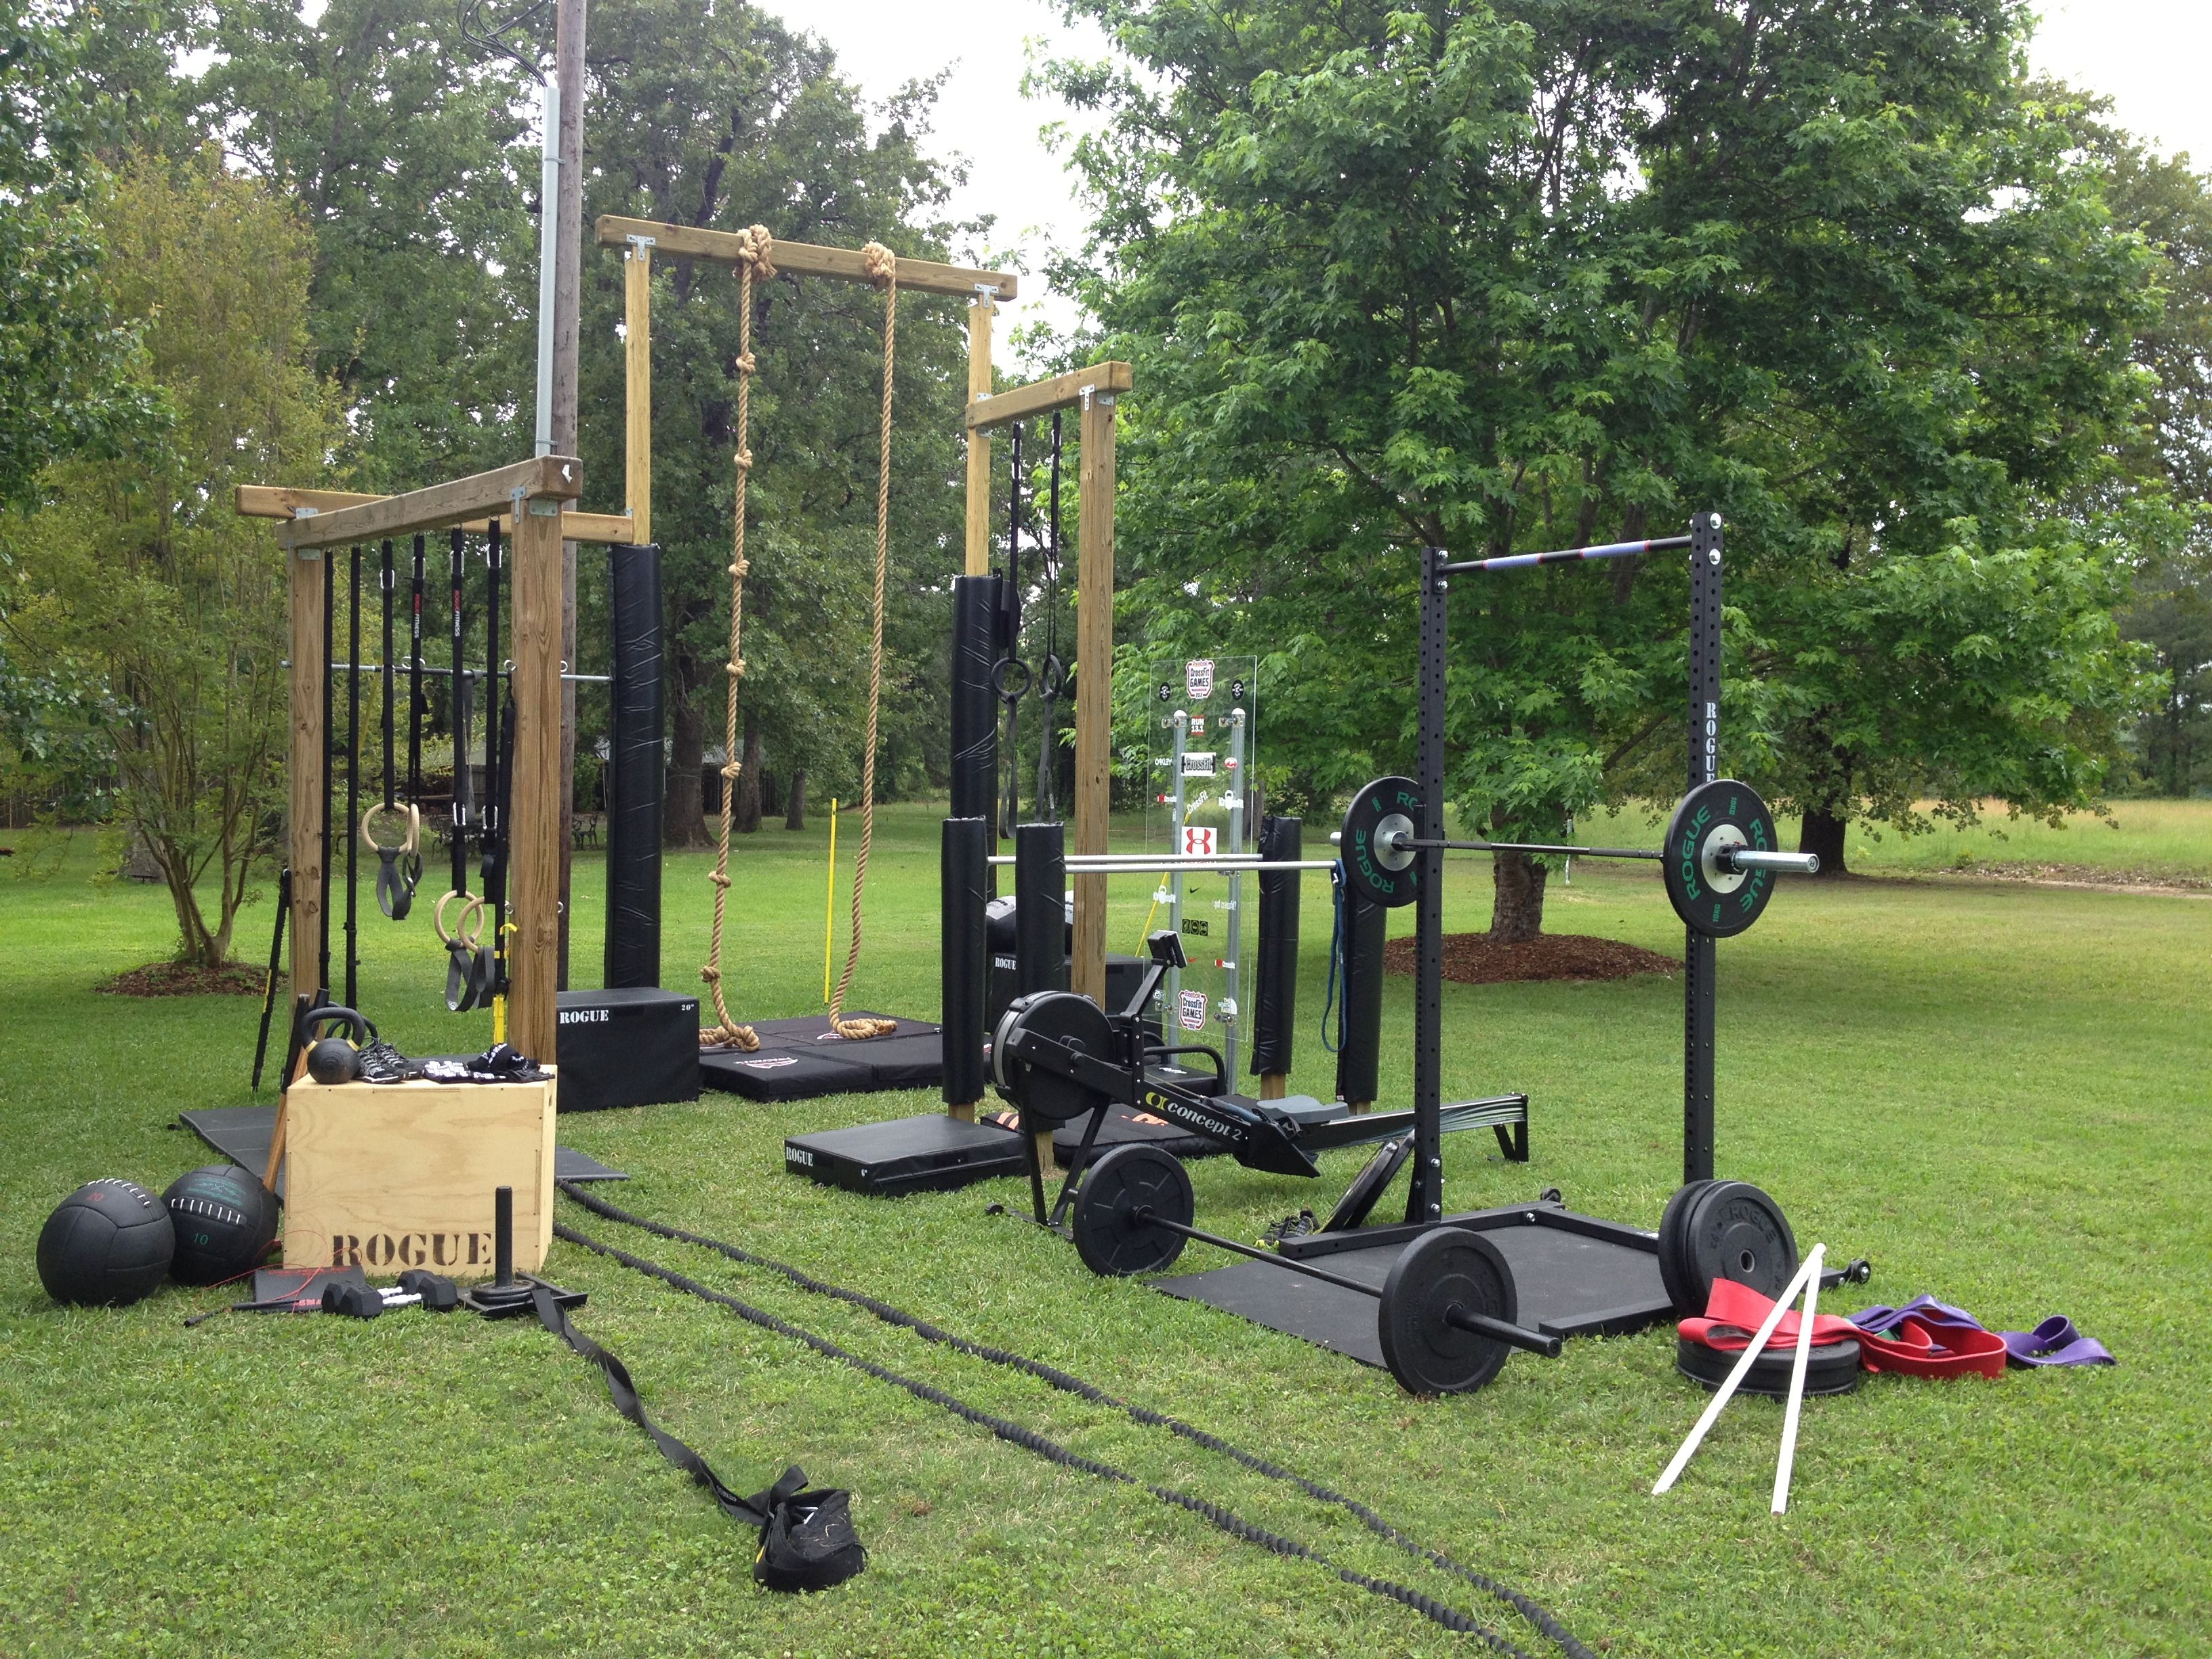 rope, sled, rig, bars and plates b22fit at home gym, backyard